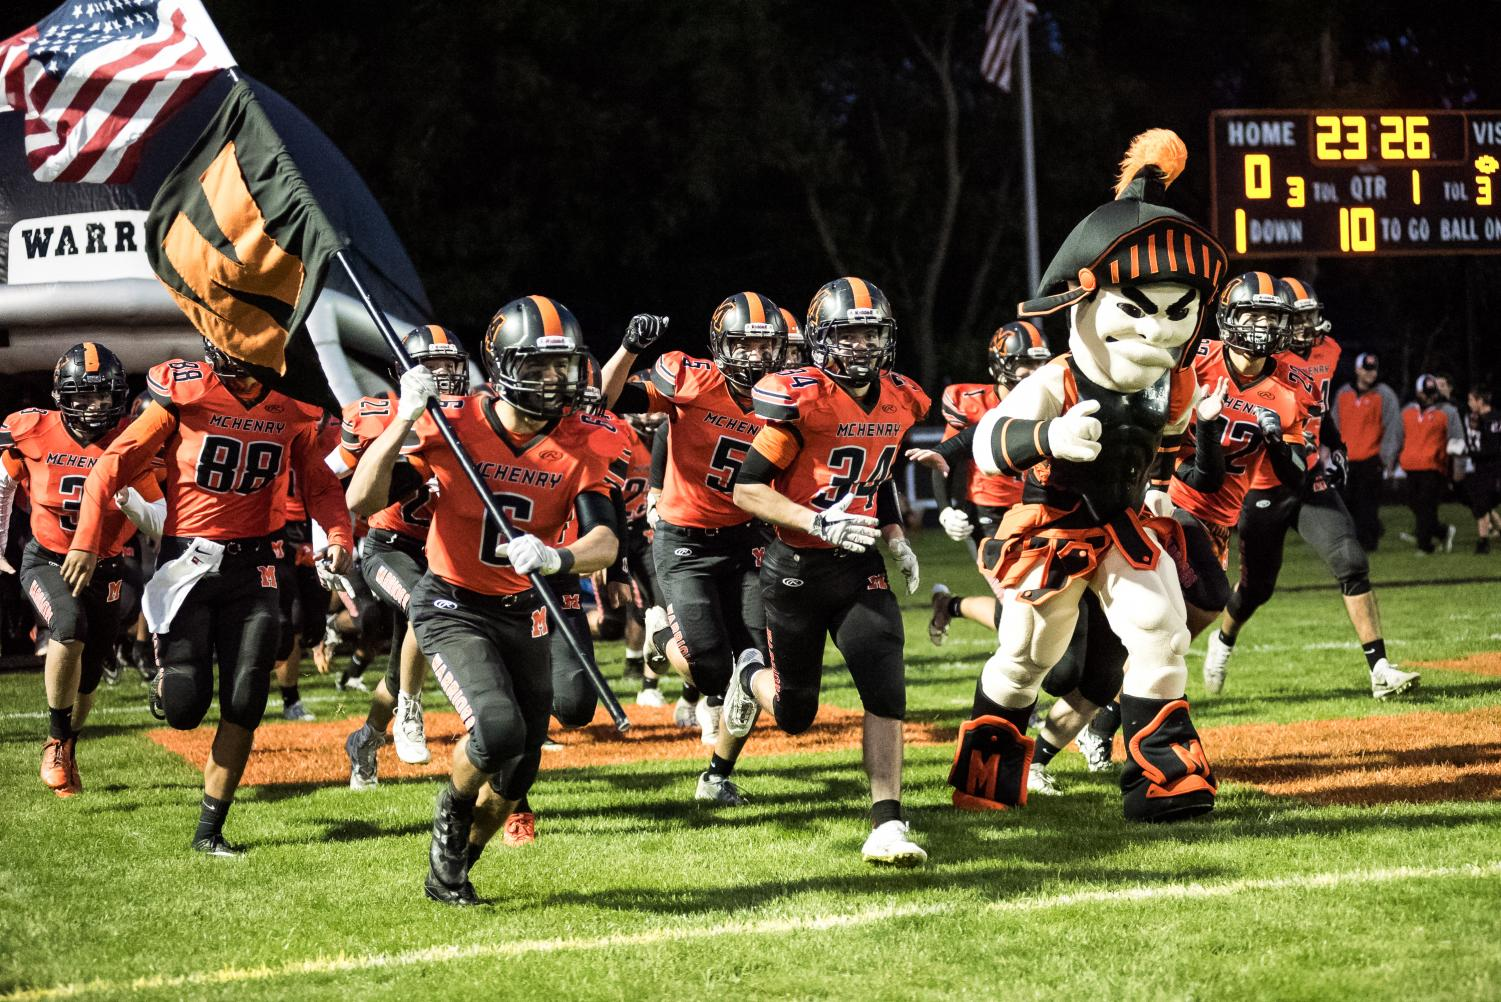 Leonidas leads the Warriors onto the football field during the 2018 Homecoming game against Cary-Grove on September 28. The 2019 team went into Homecoming with a record of 3-2.